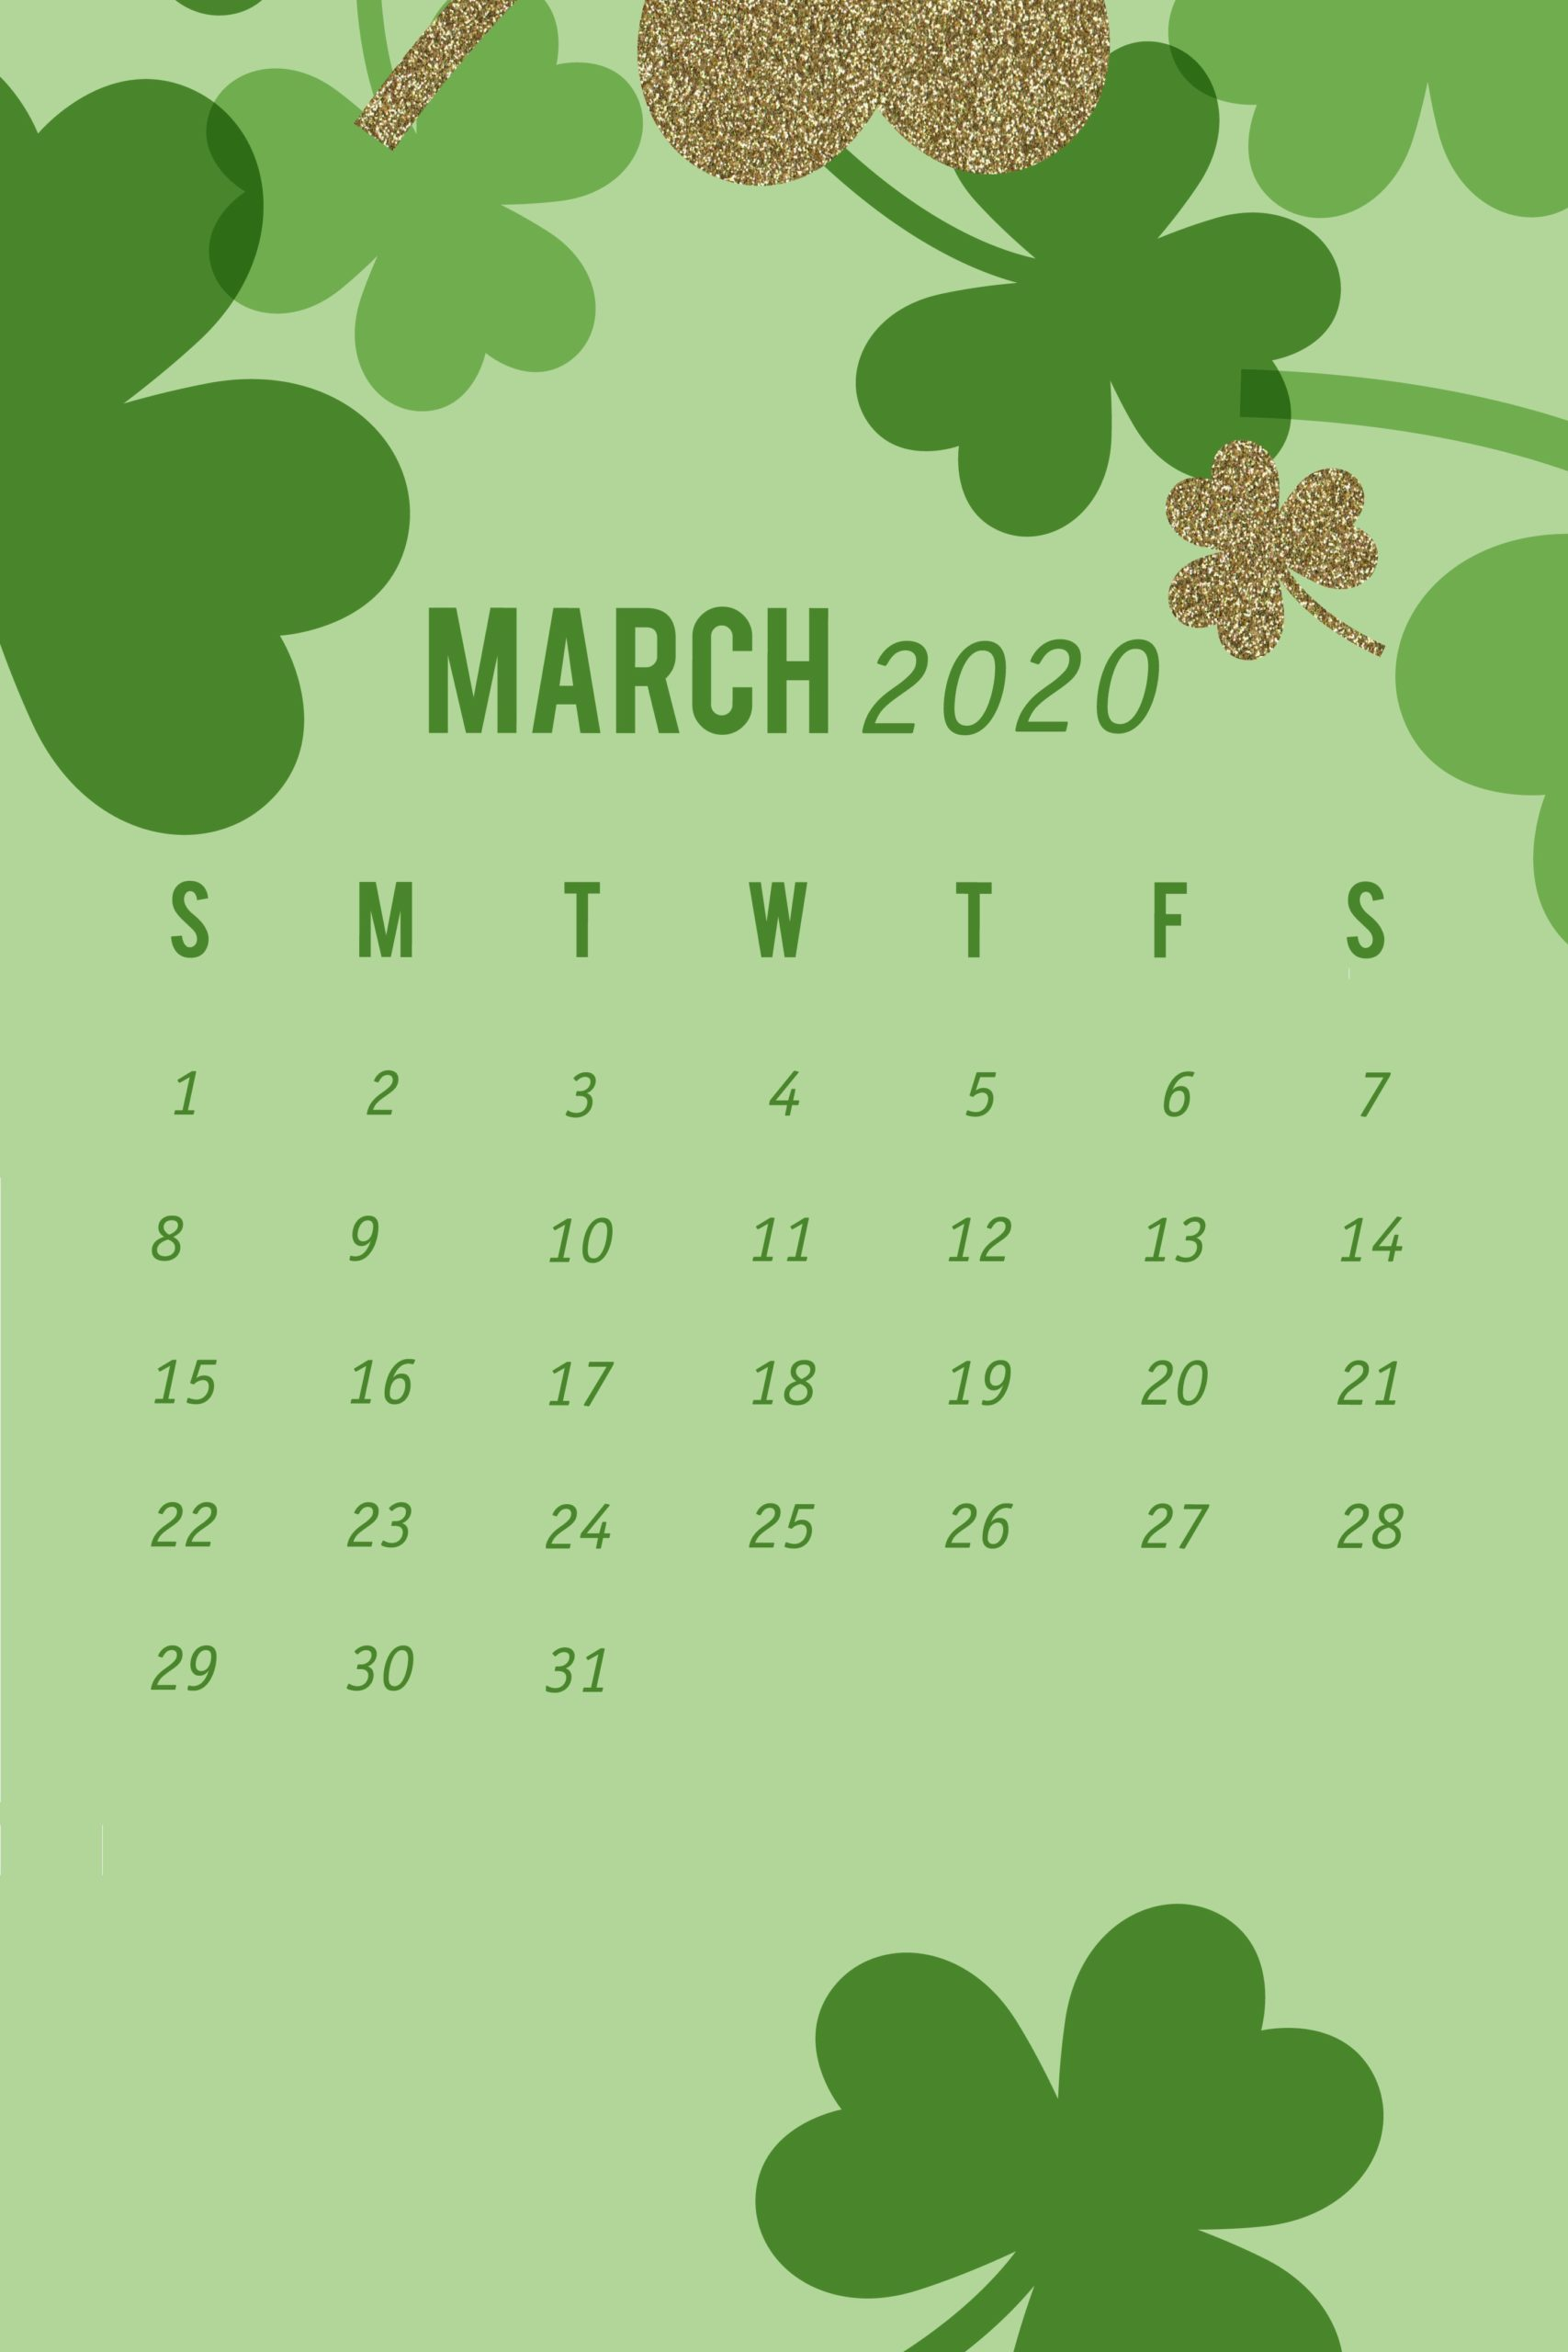 March 2020 Wallpaper iPhone